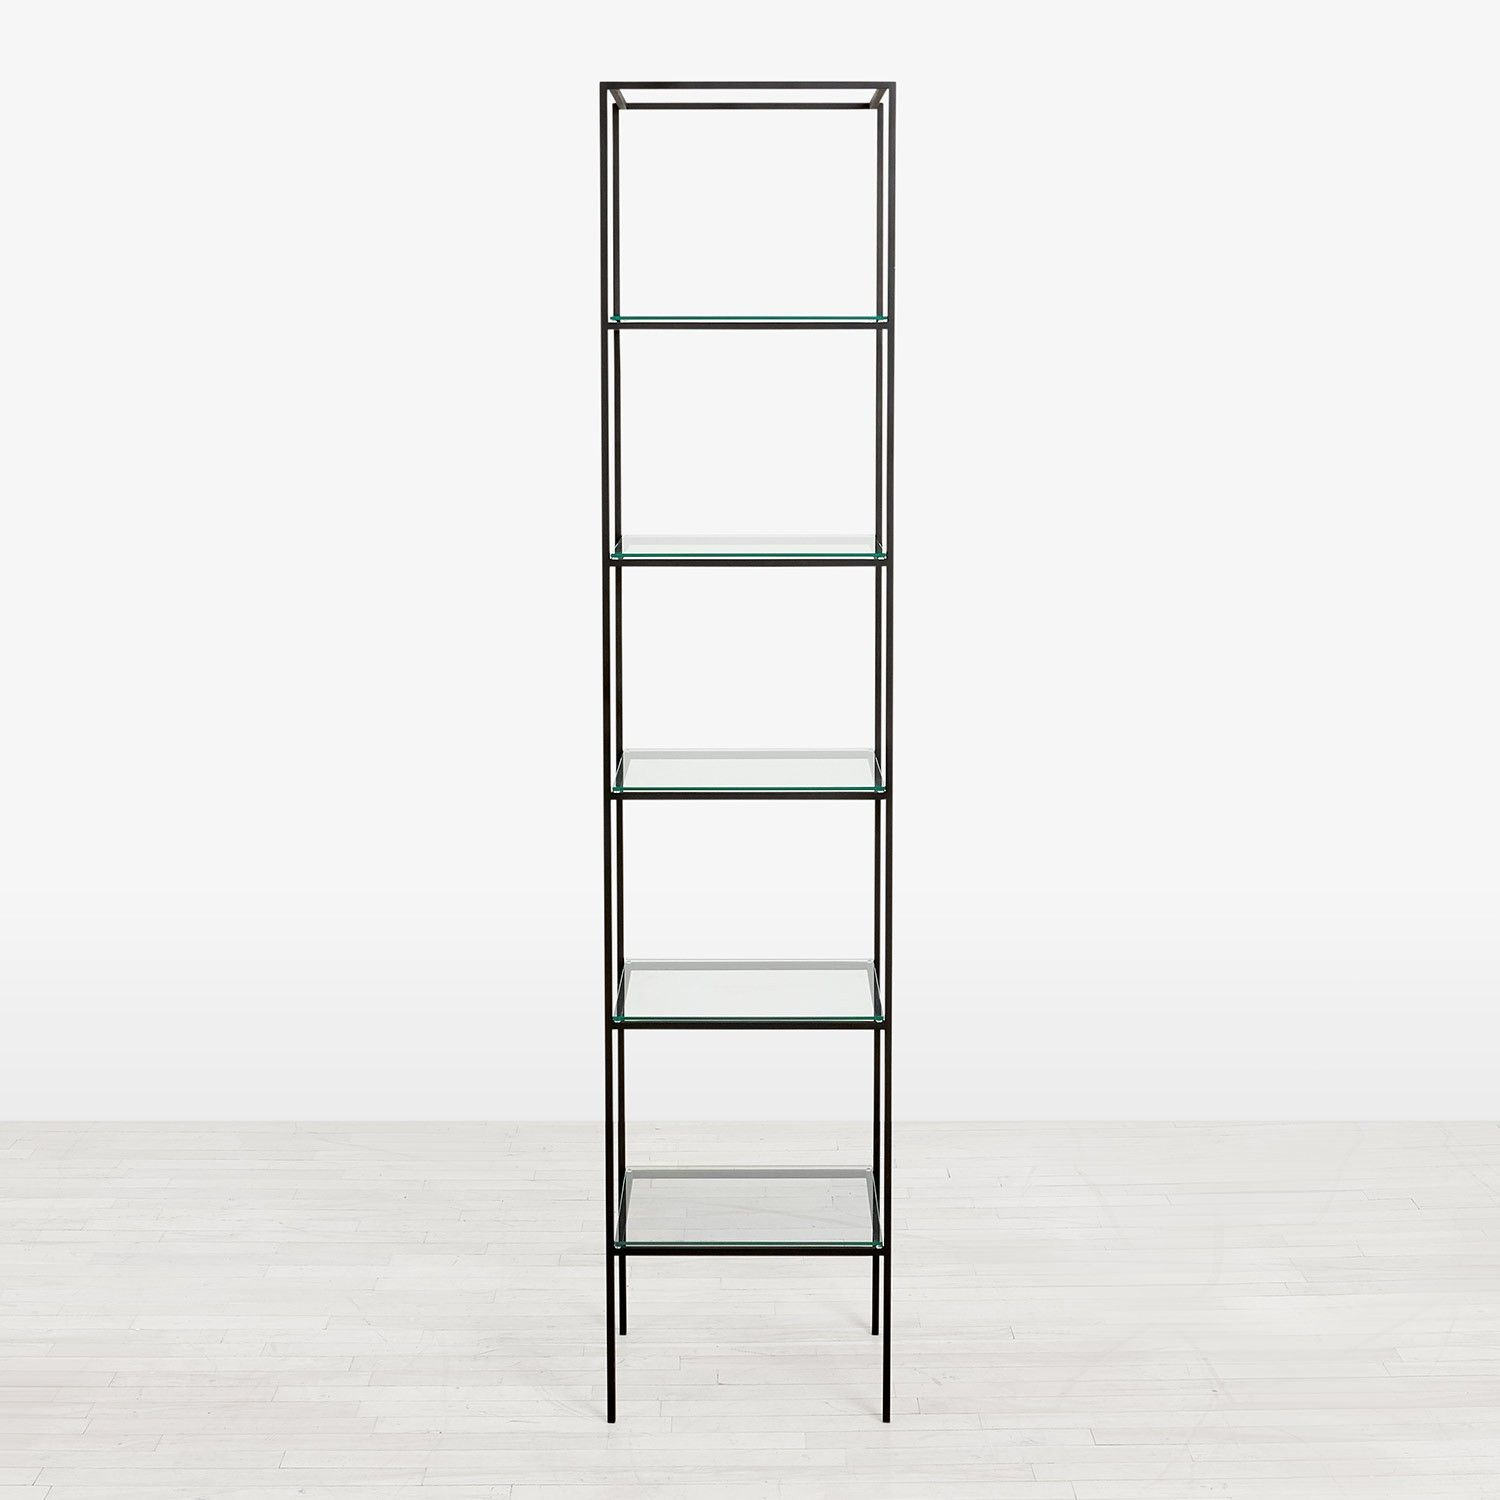 abcDNA Synthesis Glass 5Tier Narrow Shelving ABC Carpet